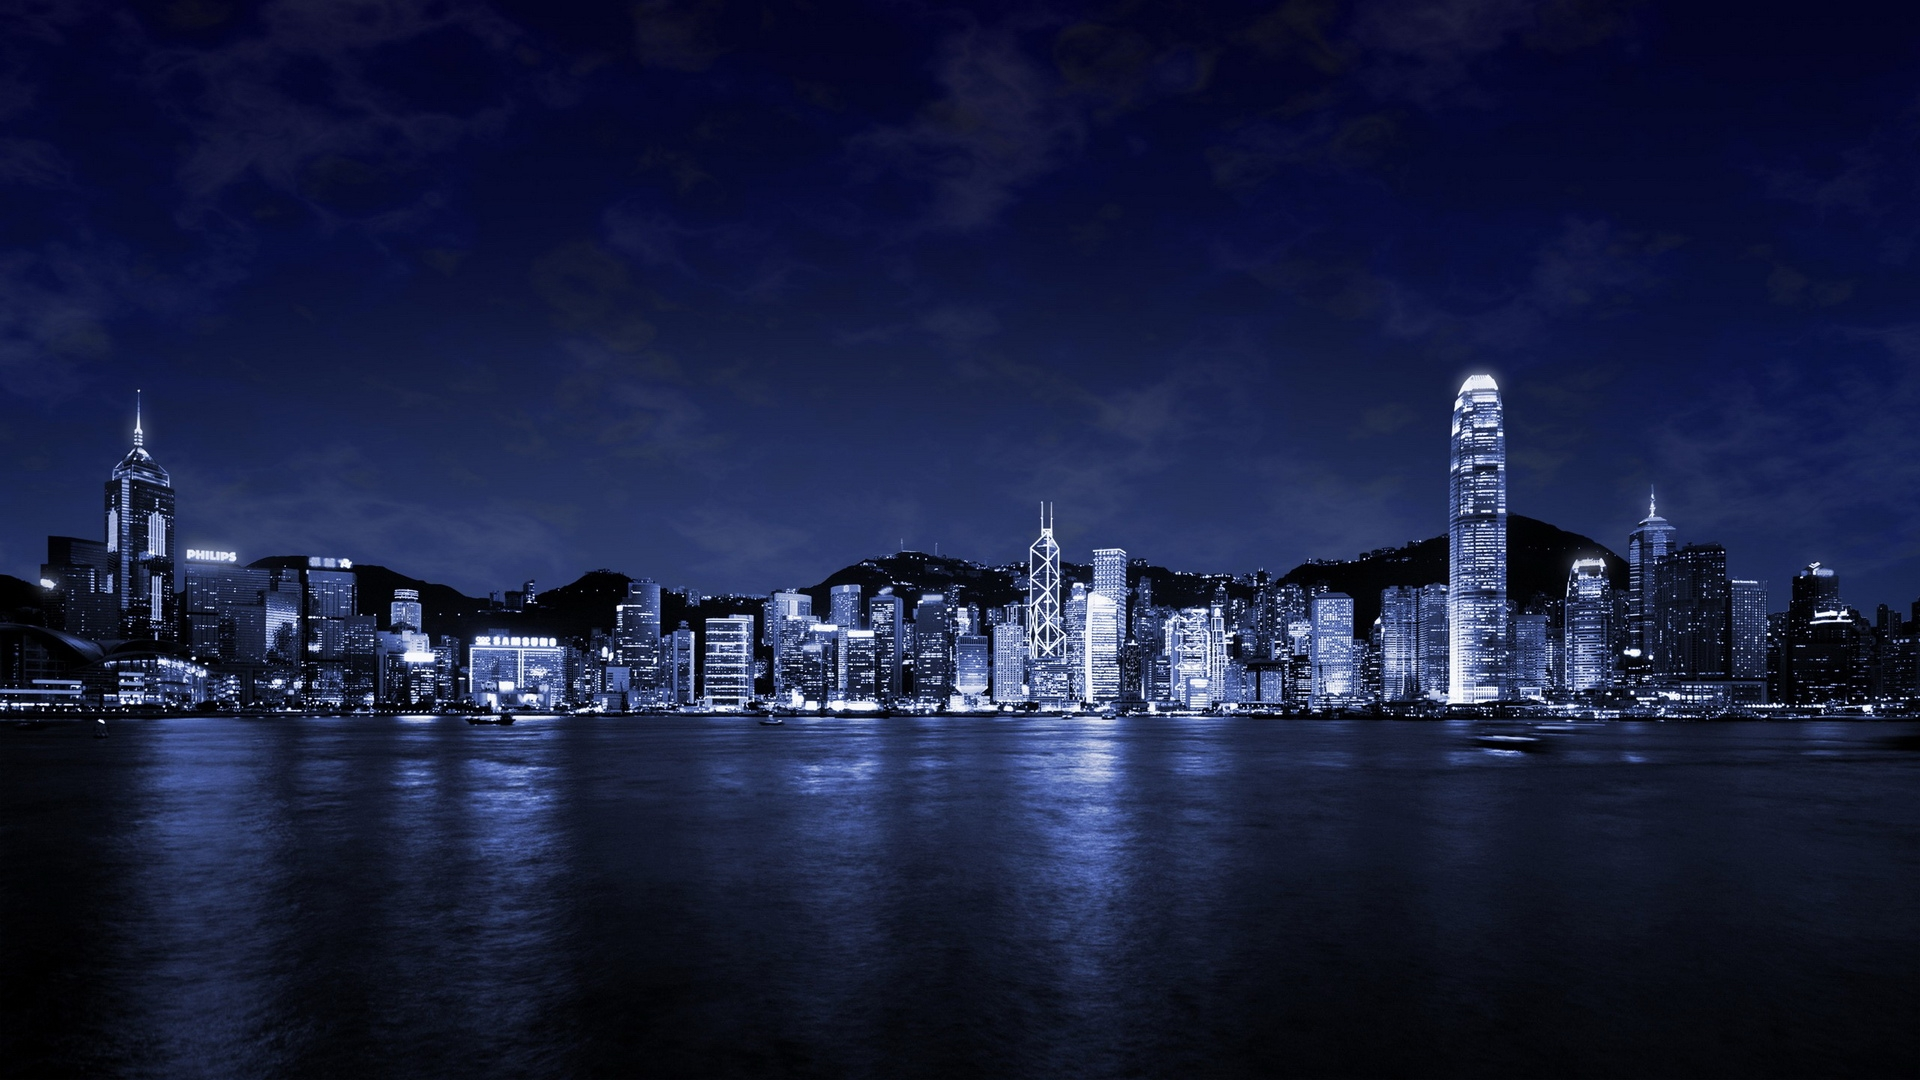 1920x1080 city at night desktop pc and mac wallpaper